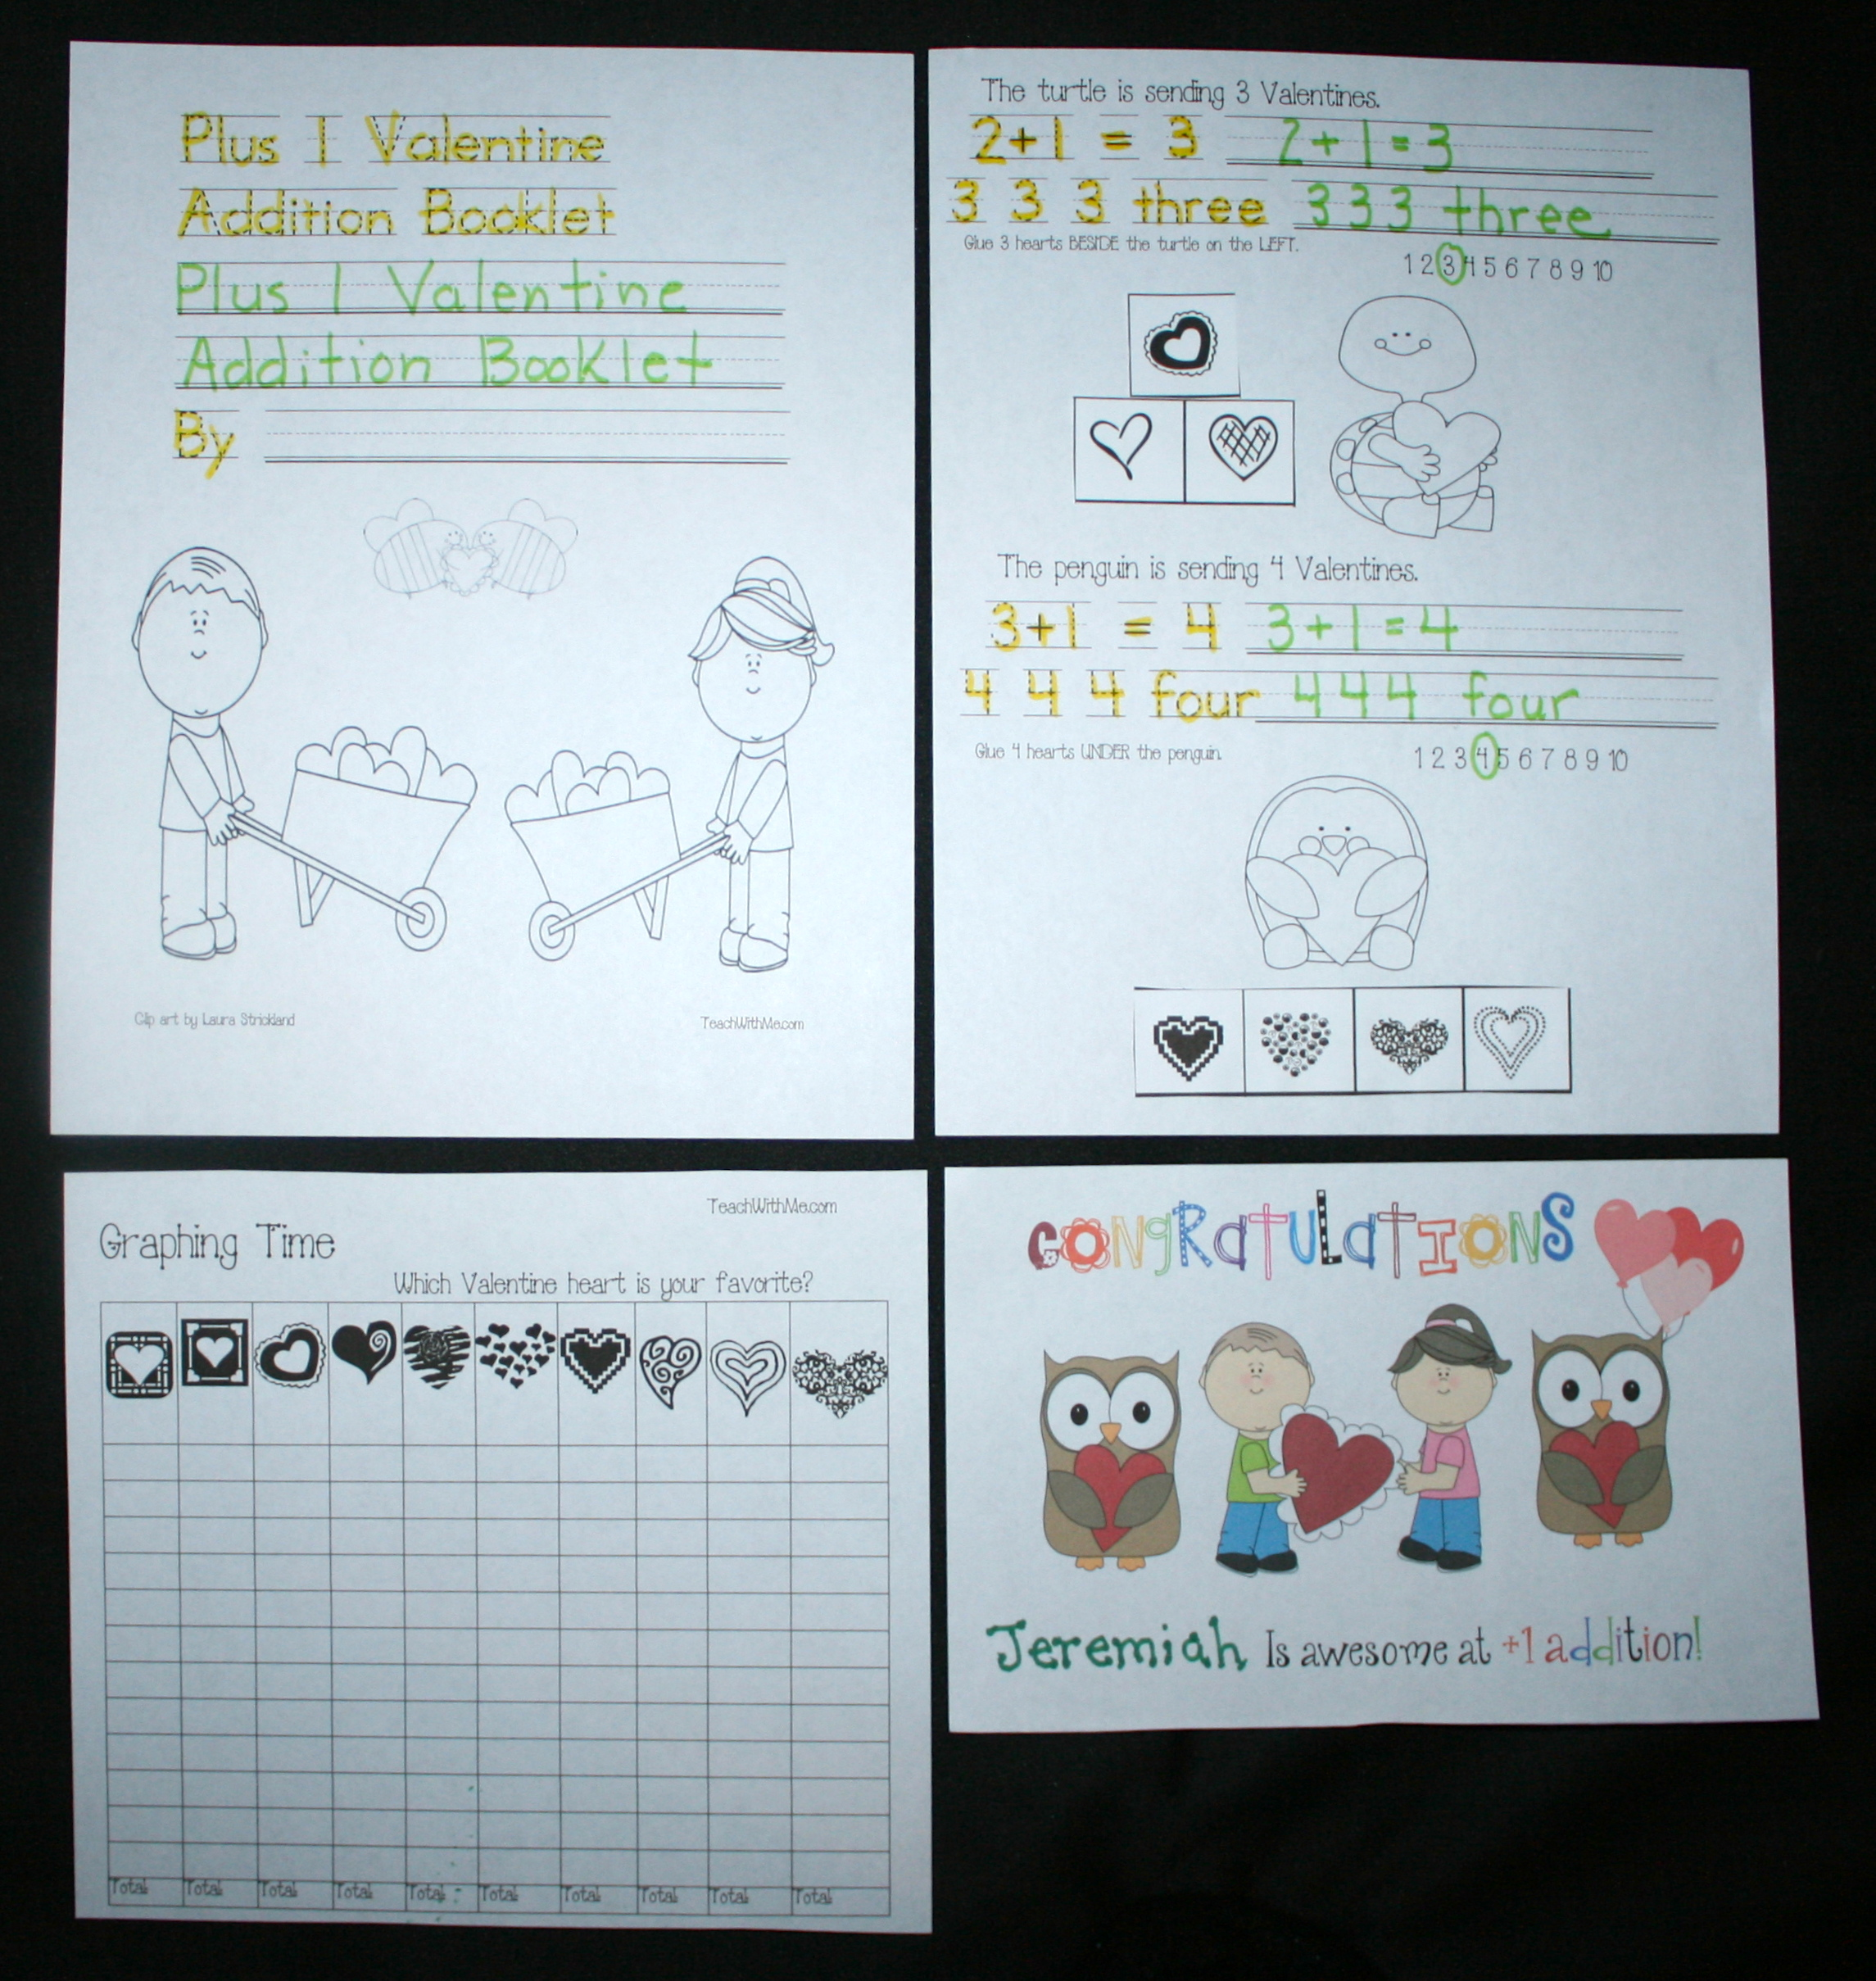 addition activities, free common core math lessons for kindergarten, free common core math lesson for 1st grade, addition booklet, +1 addition activities, snowman booklet, snowflake booklet, counting booklets for winter, Valentine booklet, graphing activities, Valentine math activities, Valentine lessons,